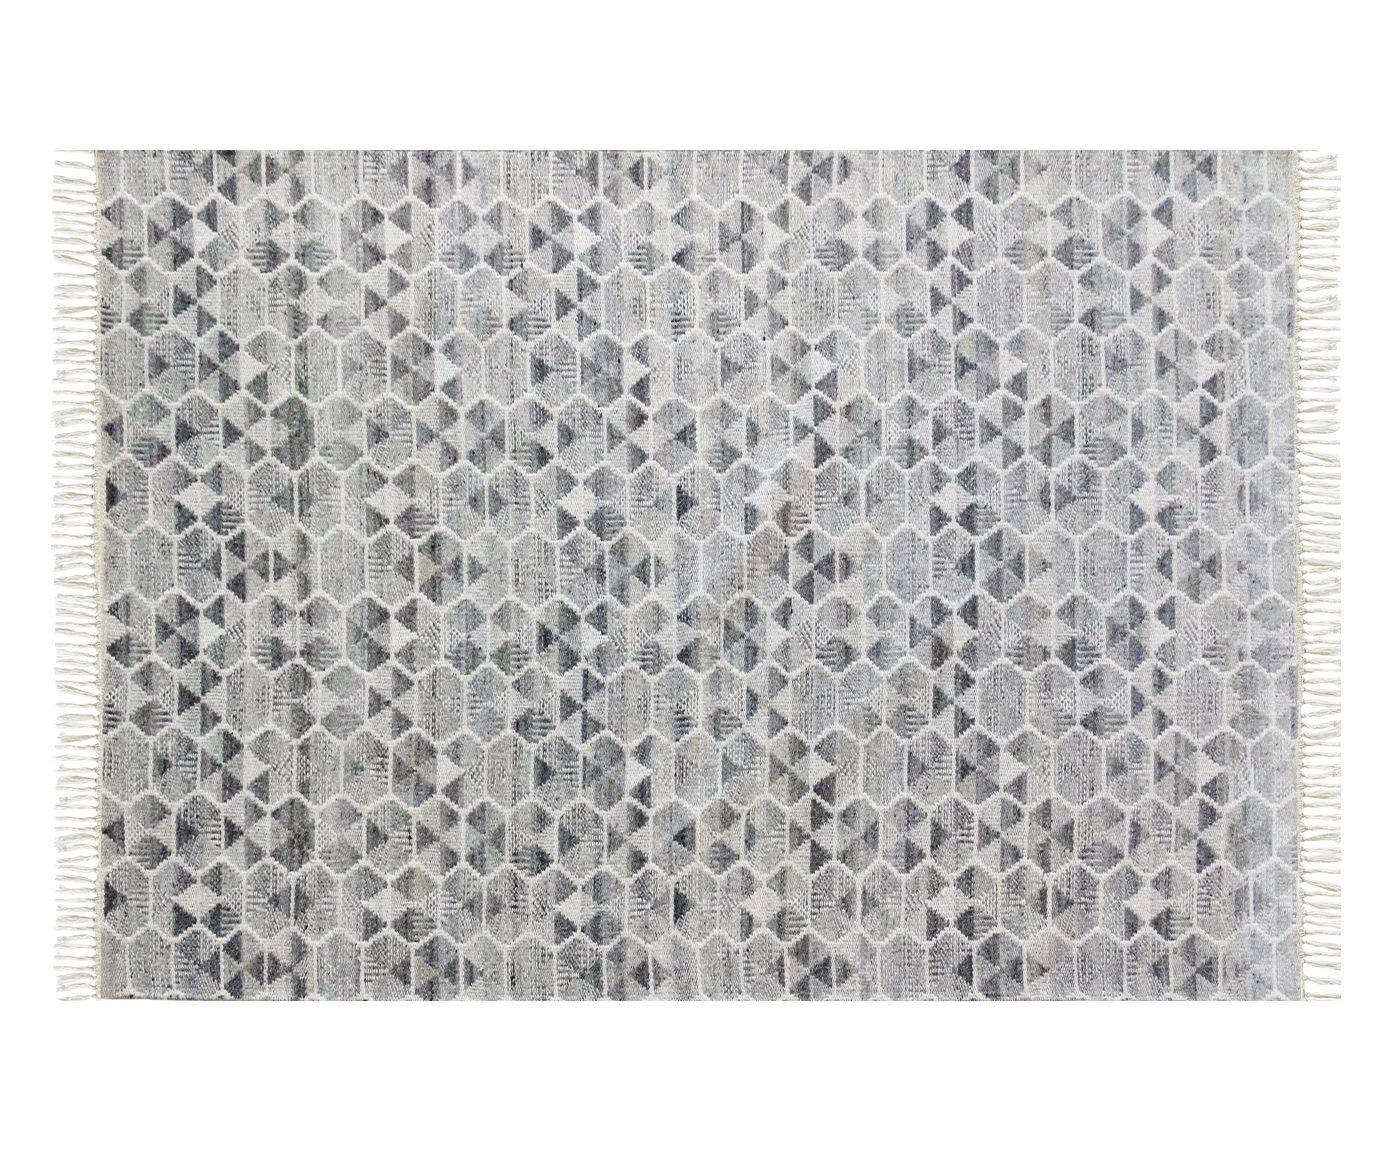 Tapete Indiano com Franja Nordic Cinza - 150X200cm | Westwing.com.br